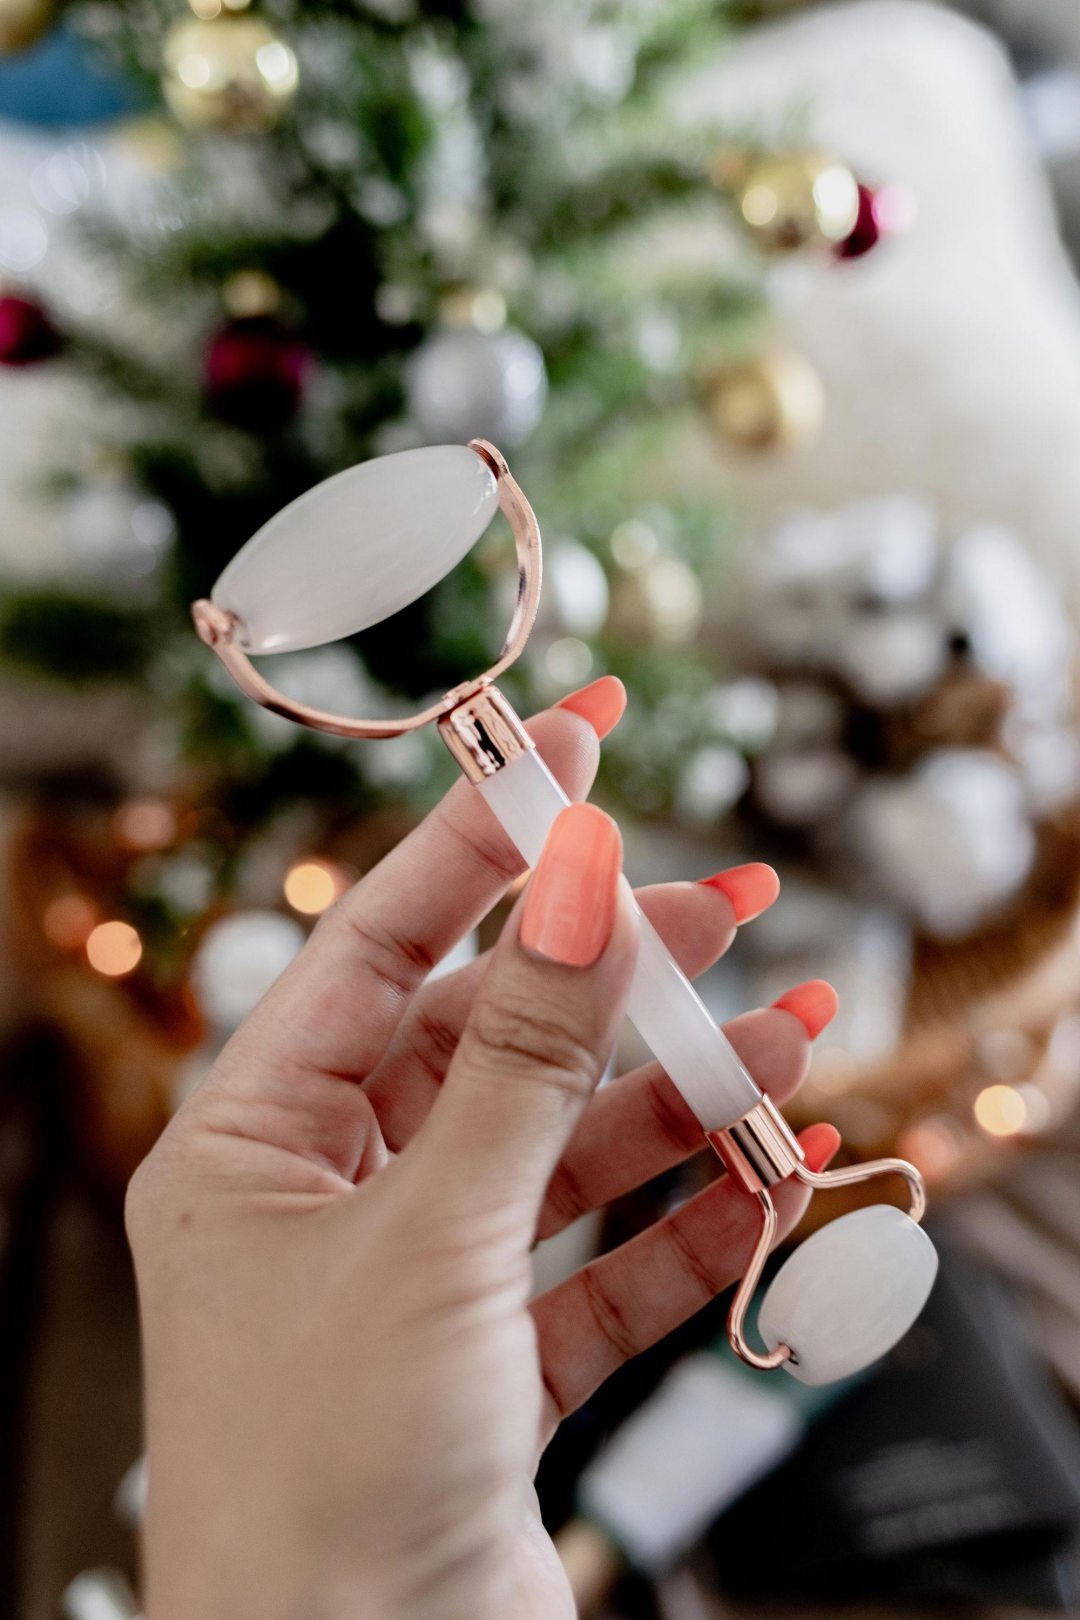 Holiday Gift Guide Clean CRUELTY FREE Skincare Molly Larsen Beauty Style Arizona Blogger allaboutgoodvibes.com IG @TheVibesCloset